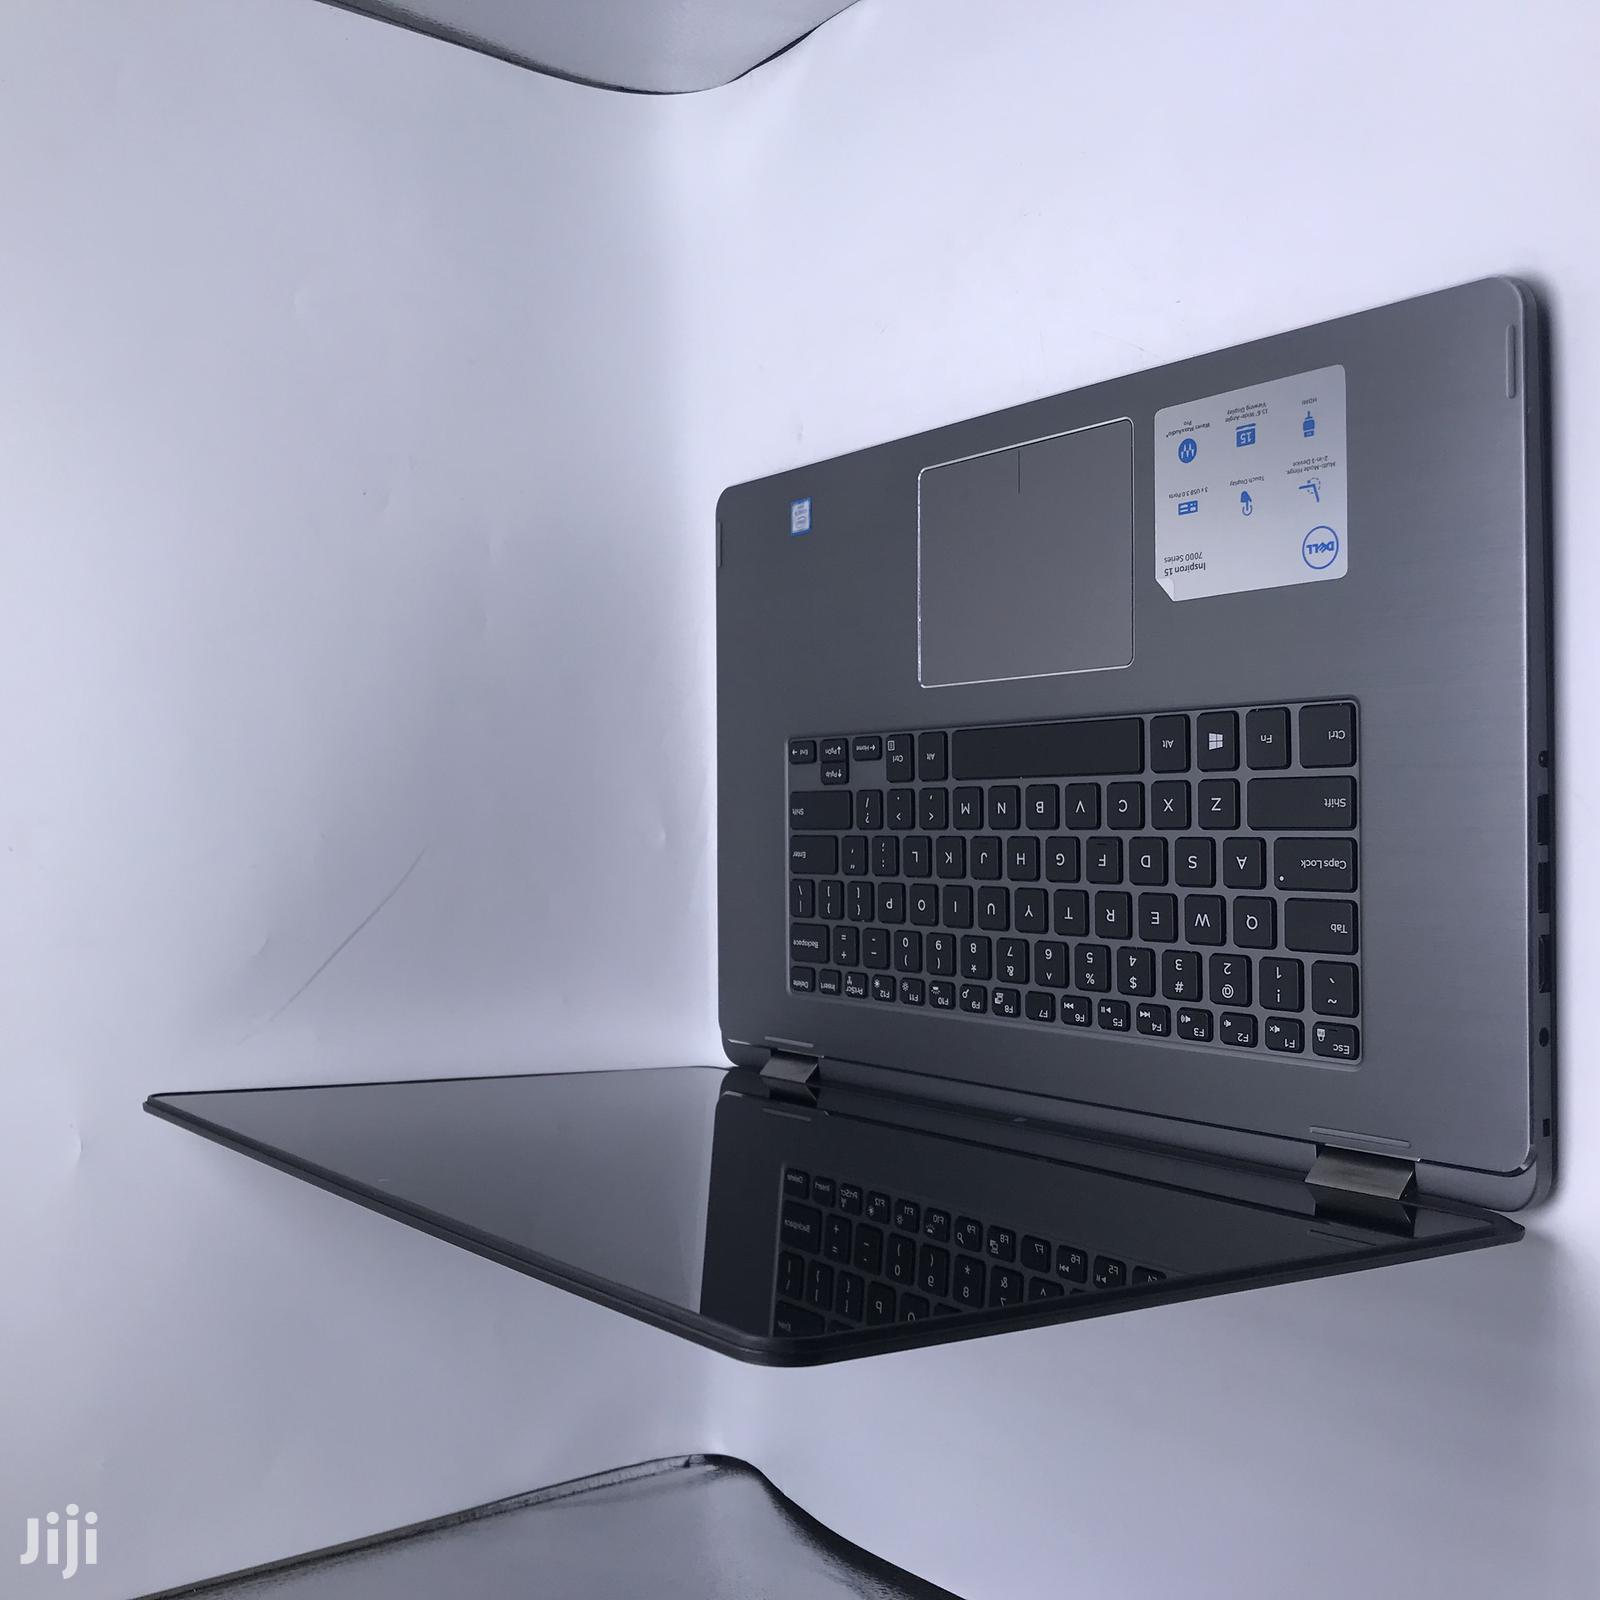 Laptop Dell Inspiron 15 7000 8GB Intel Core I5 SSD 256GB | Laptops & Computers for sale in Dzorwulu, Greater Accra, Ghana